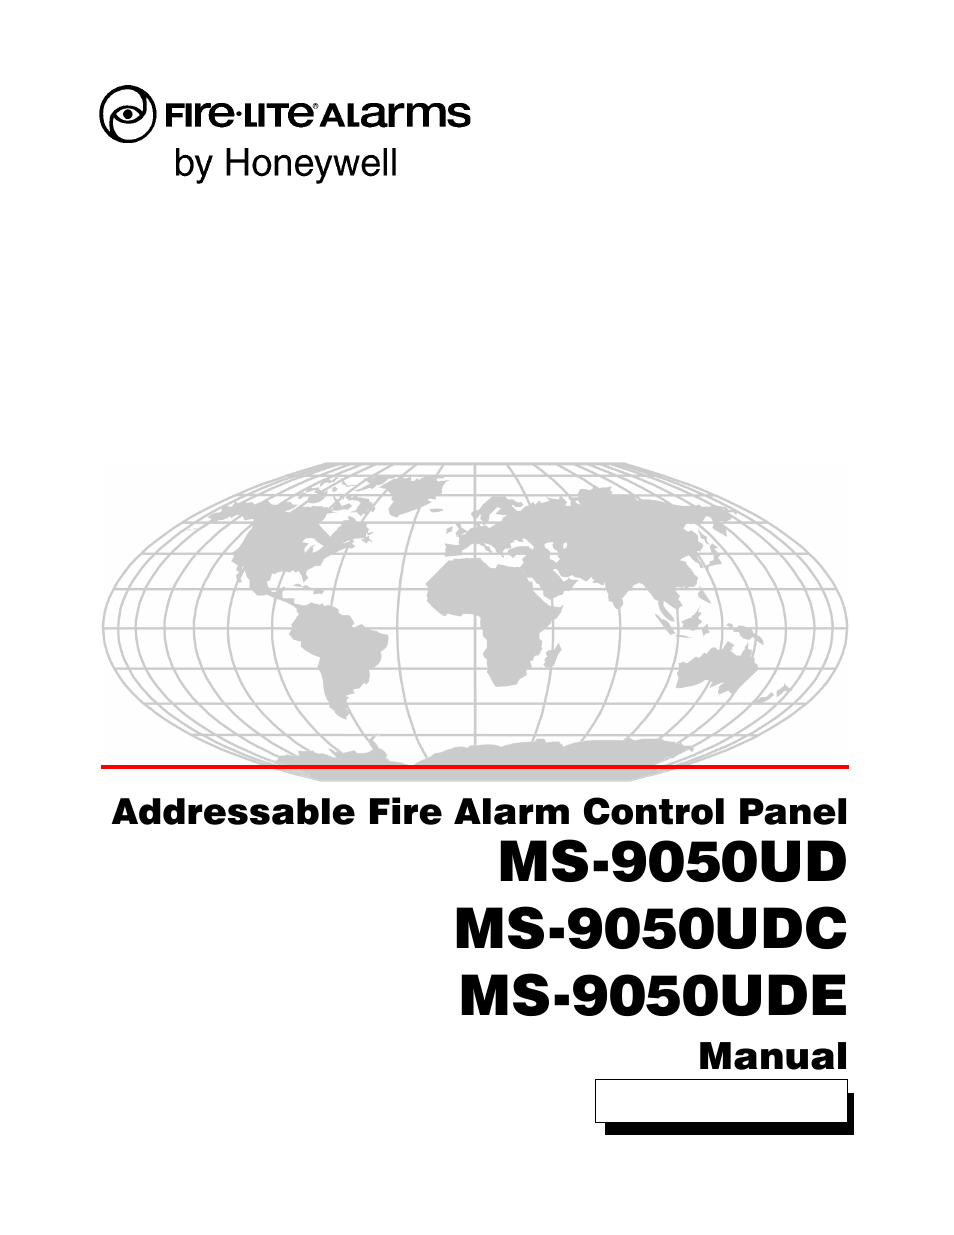 Fire-Lite MS-9050UDC Addressable Fire Alarm Control Panel